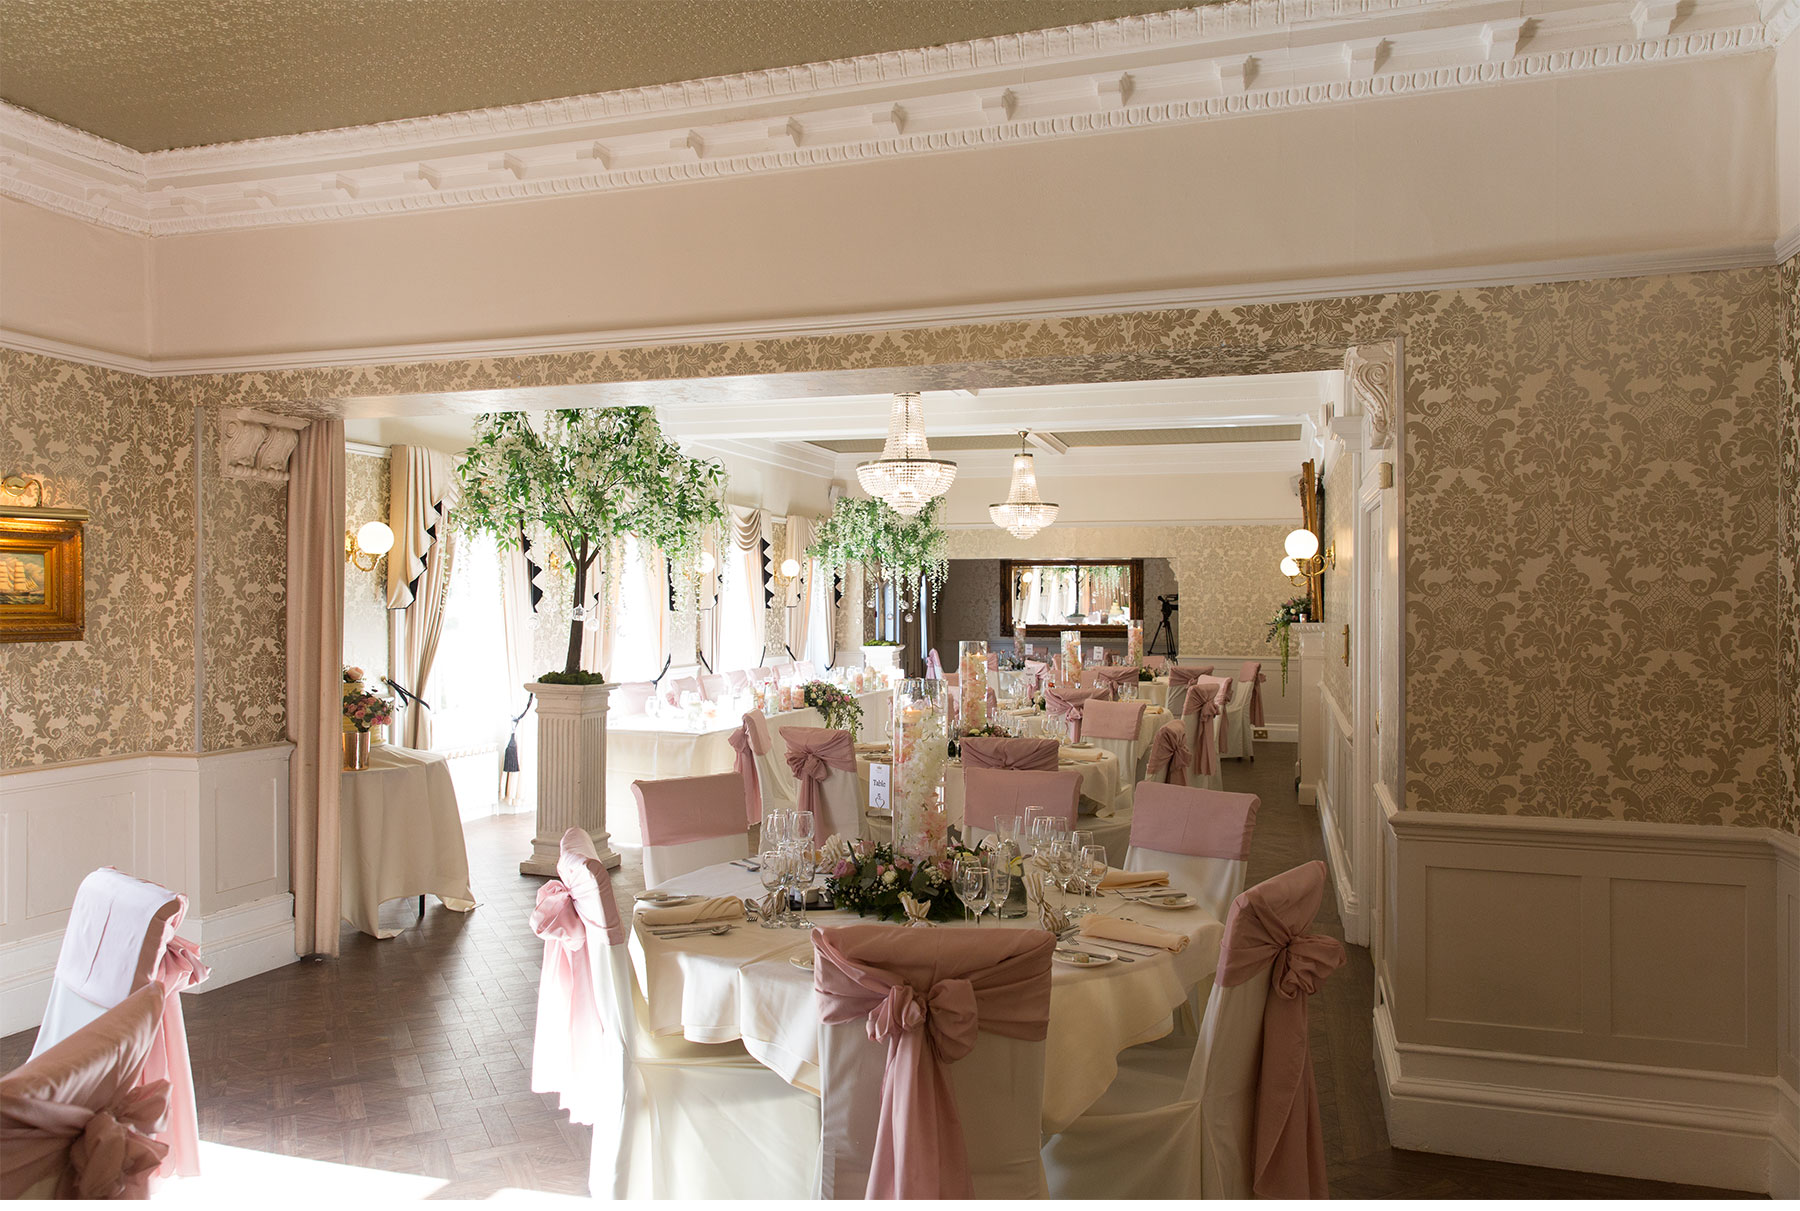 Bartle hall wedding room